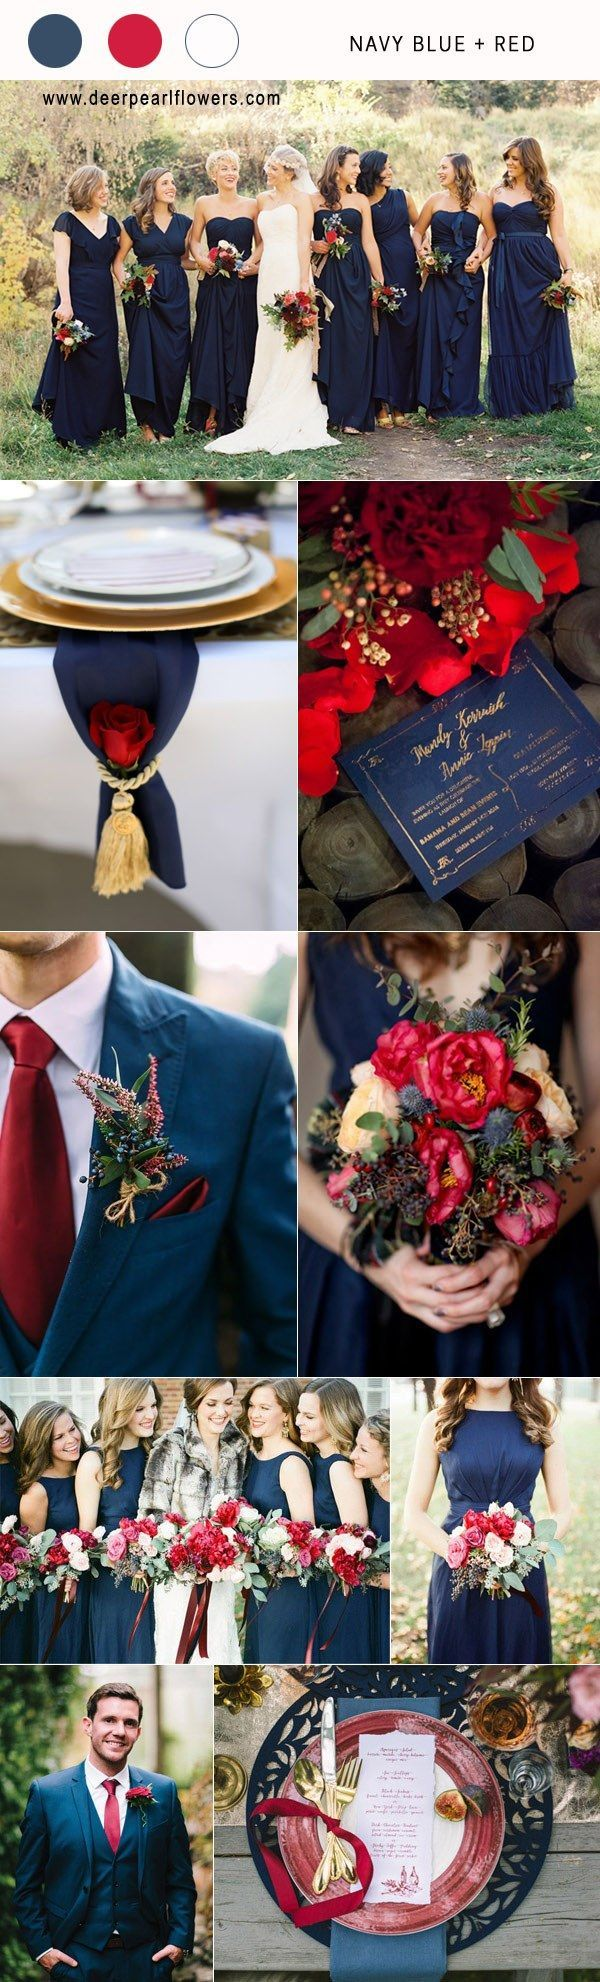 navy blue and red fall wedding color combo ideas for 2018 #blueweding #weddingcolors #weddingideas / http://www.deerpearlflowers.com/navy-blue-wedding-color-combo-ideas/ #WeddingIdeasColors